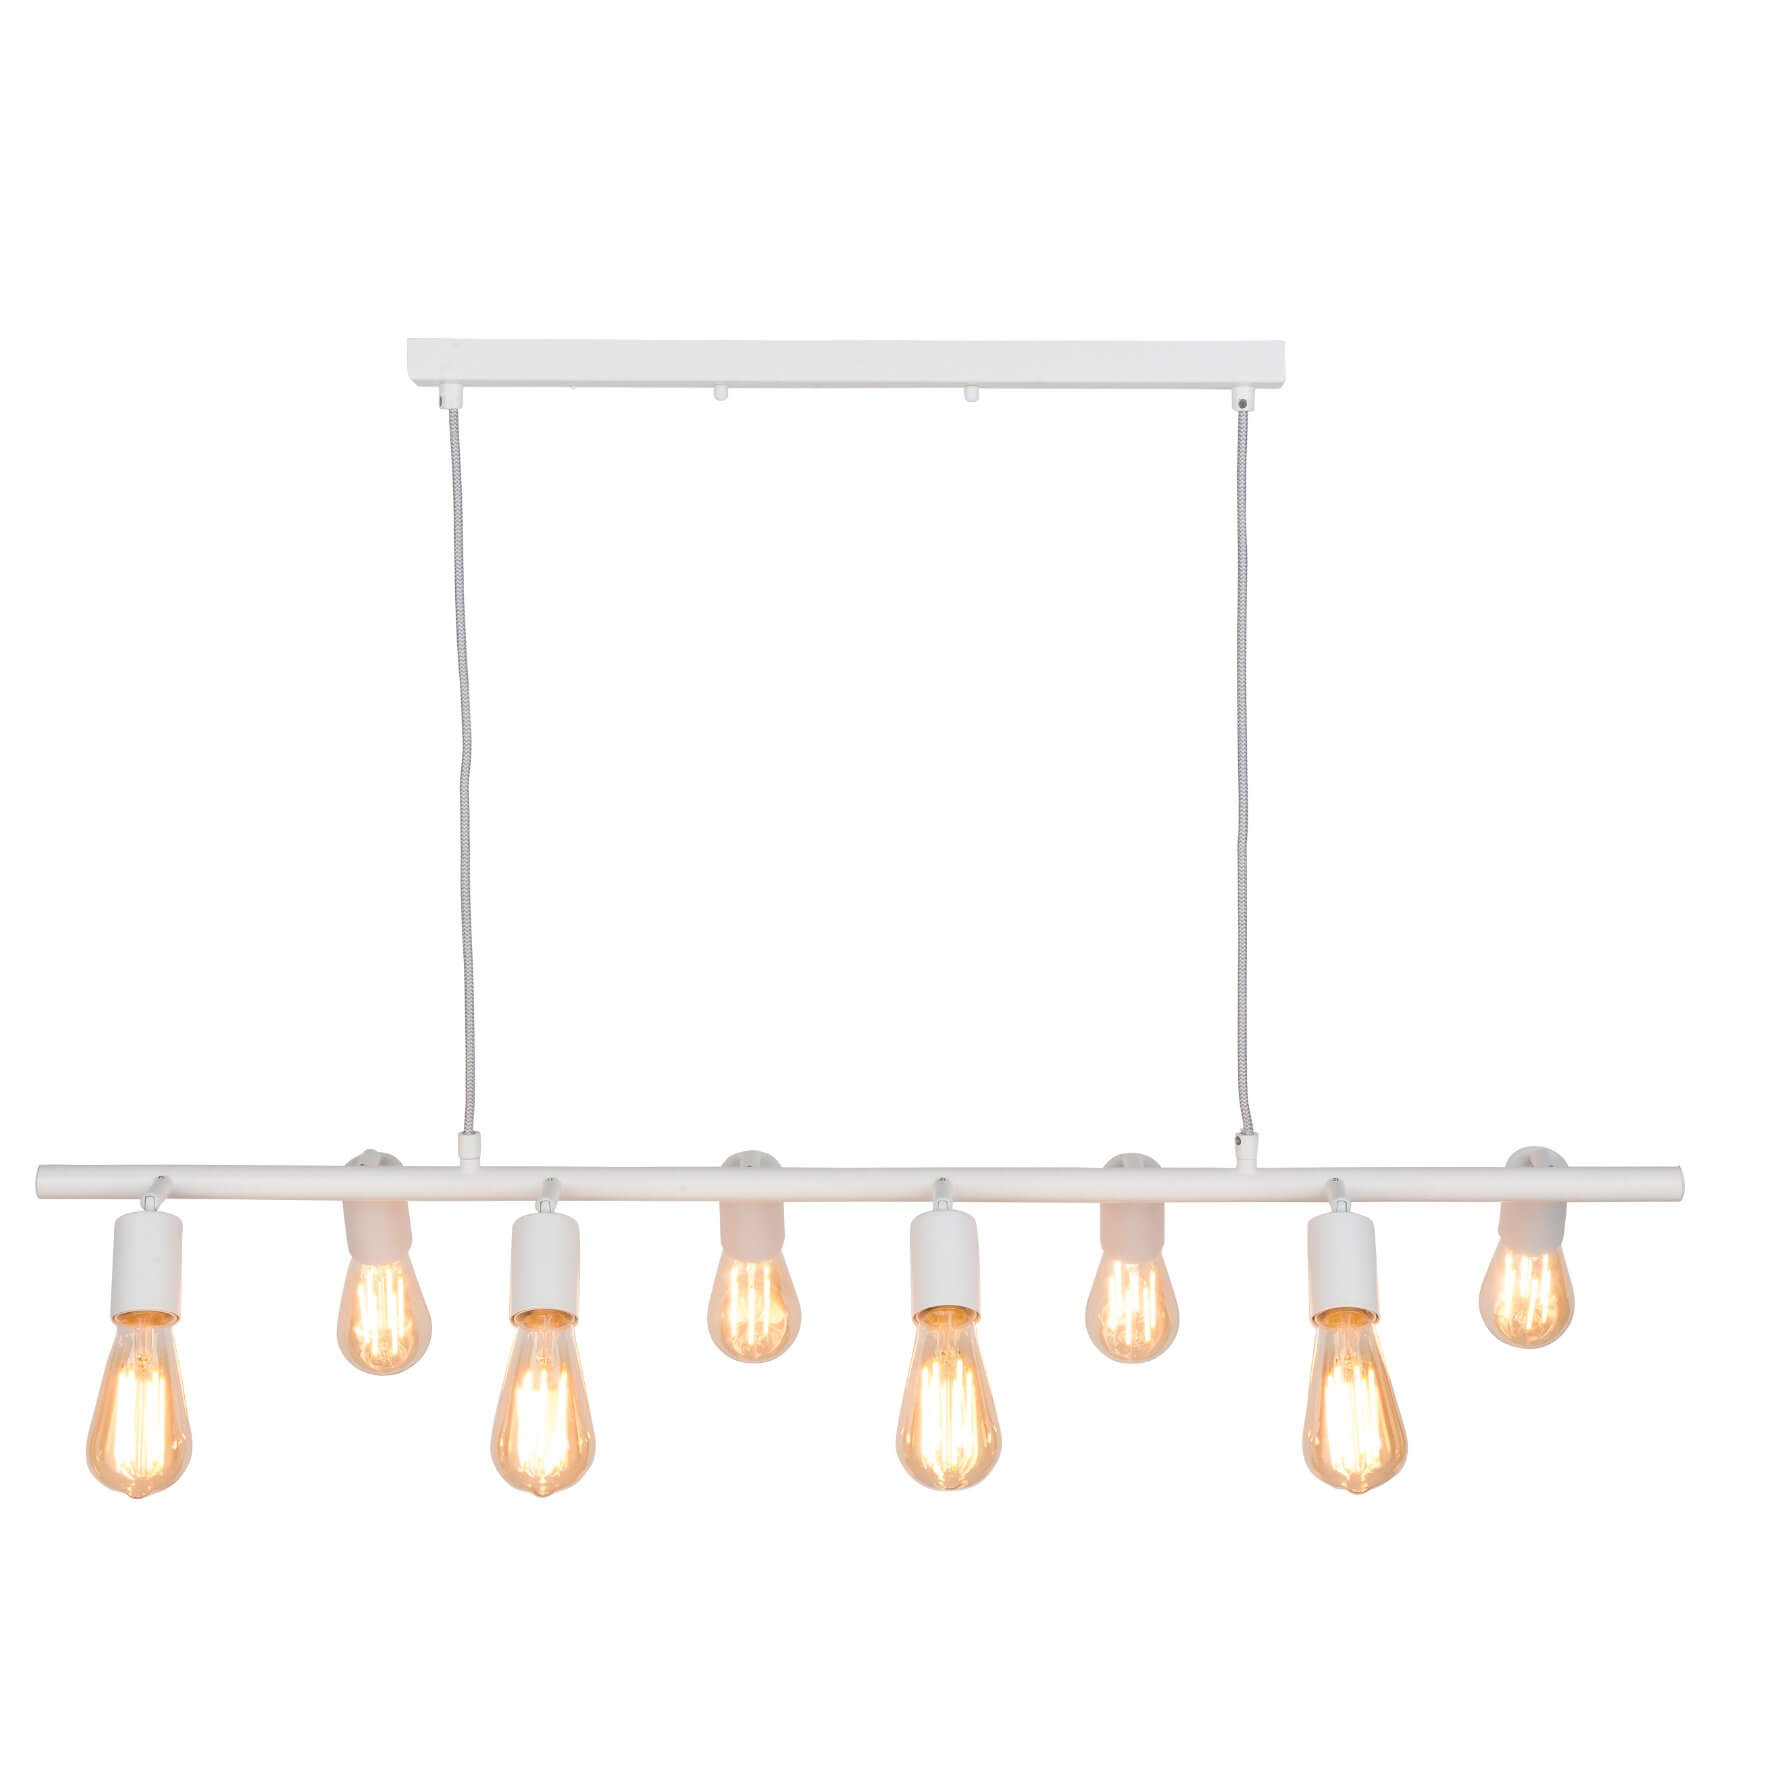 Suspension lustre Miami blanc